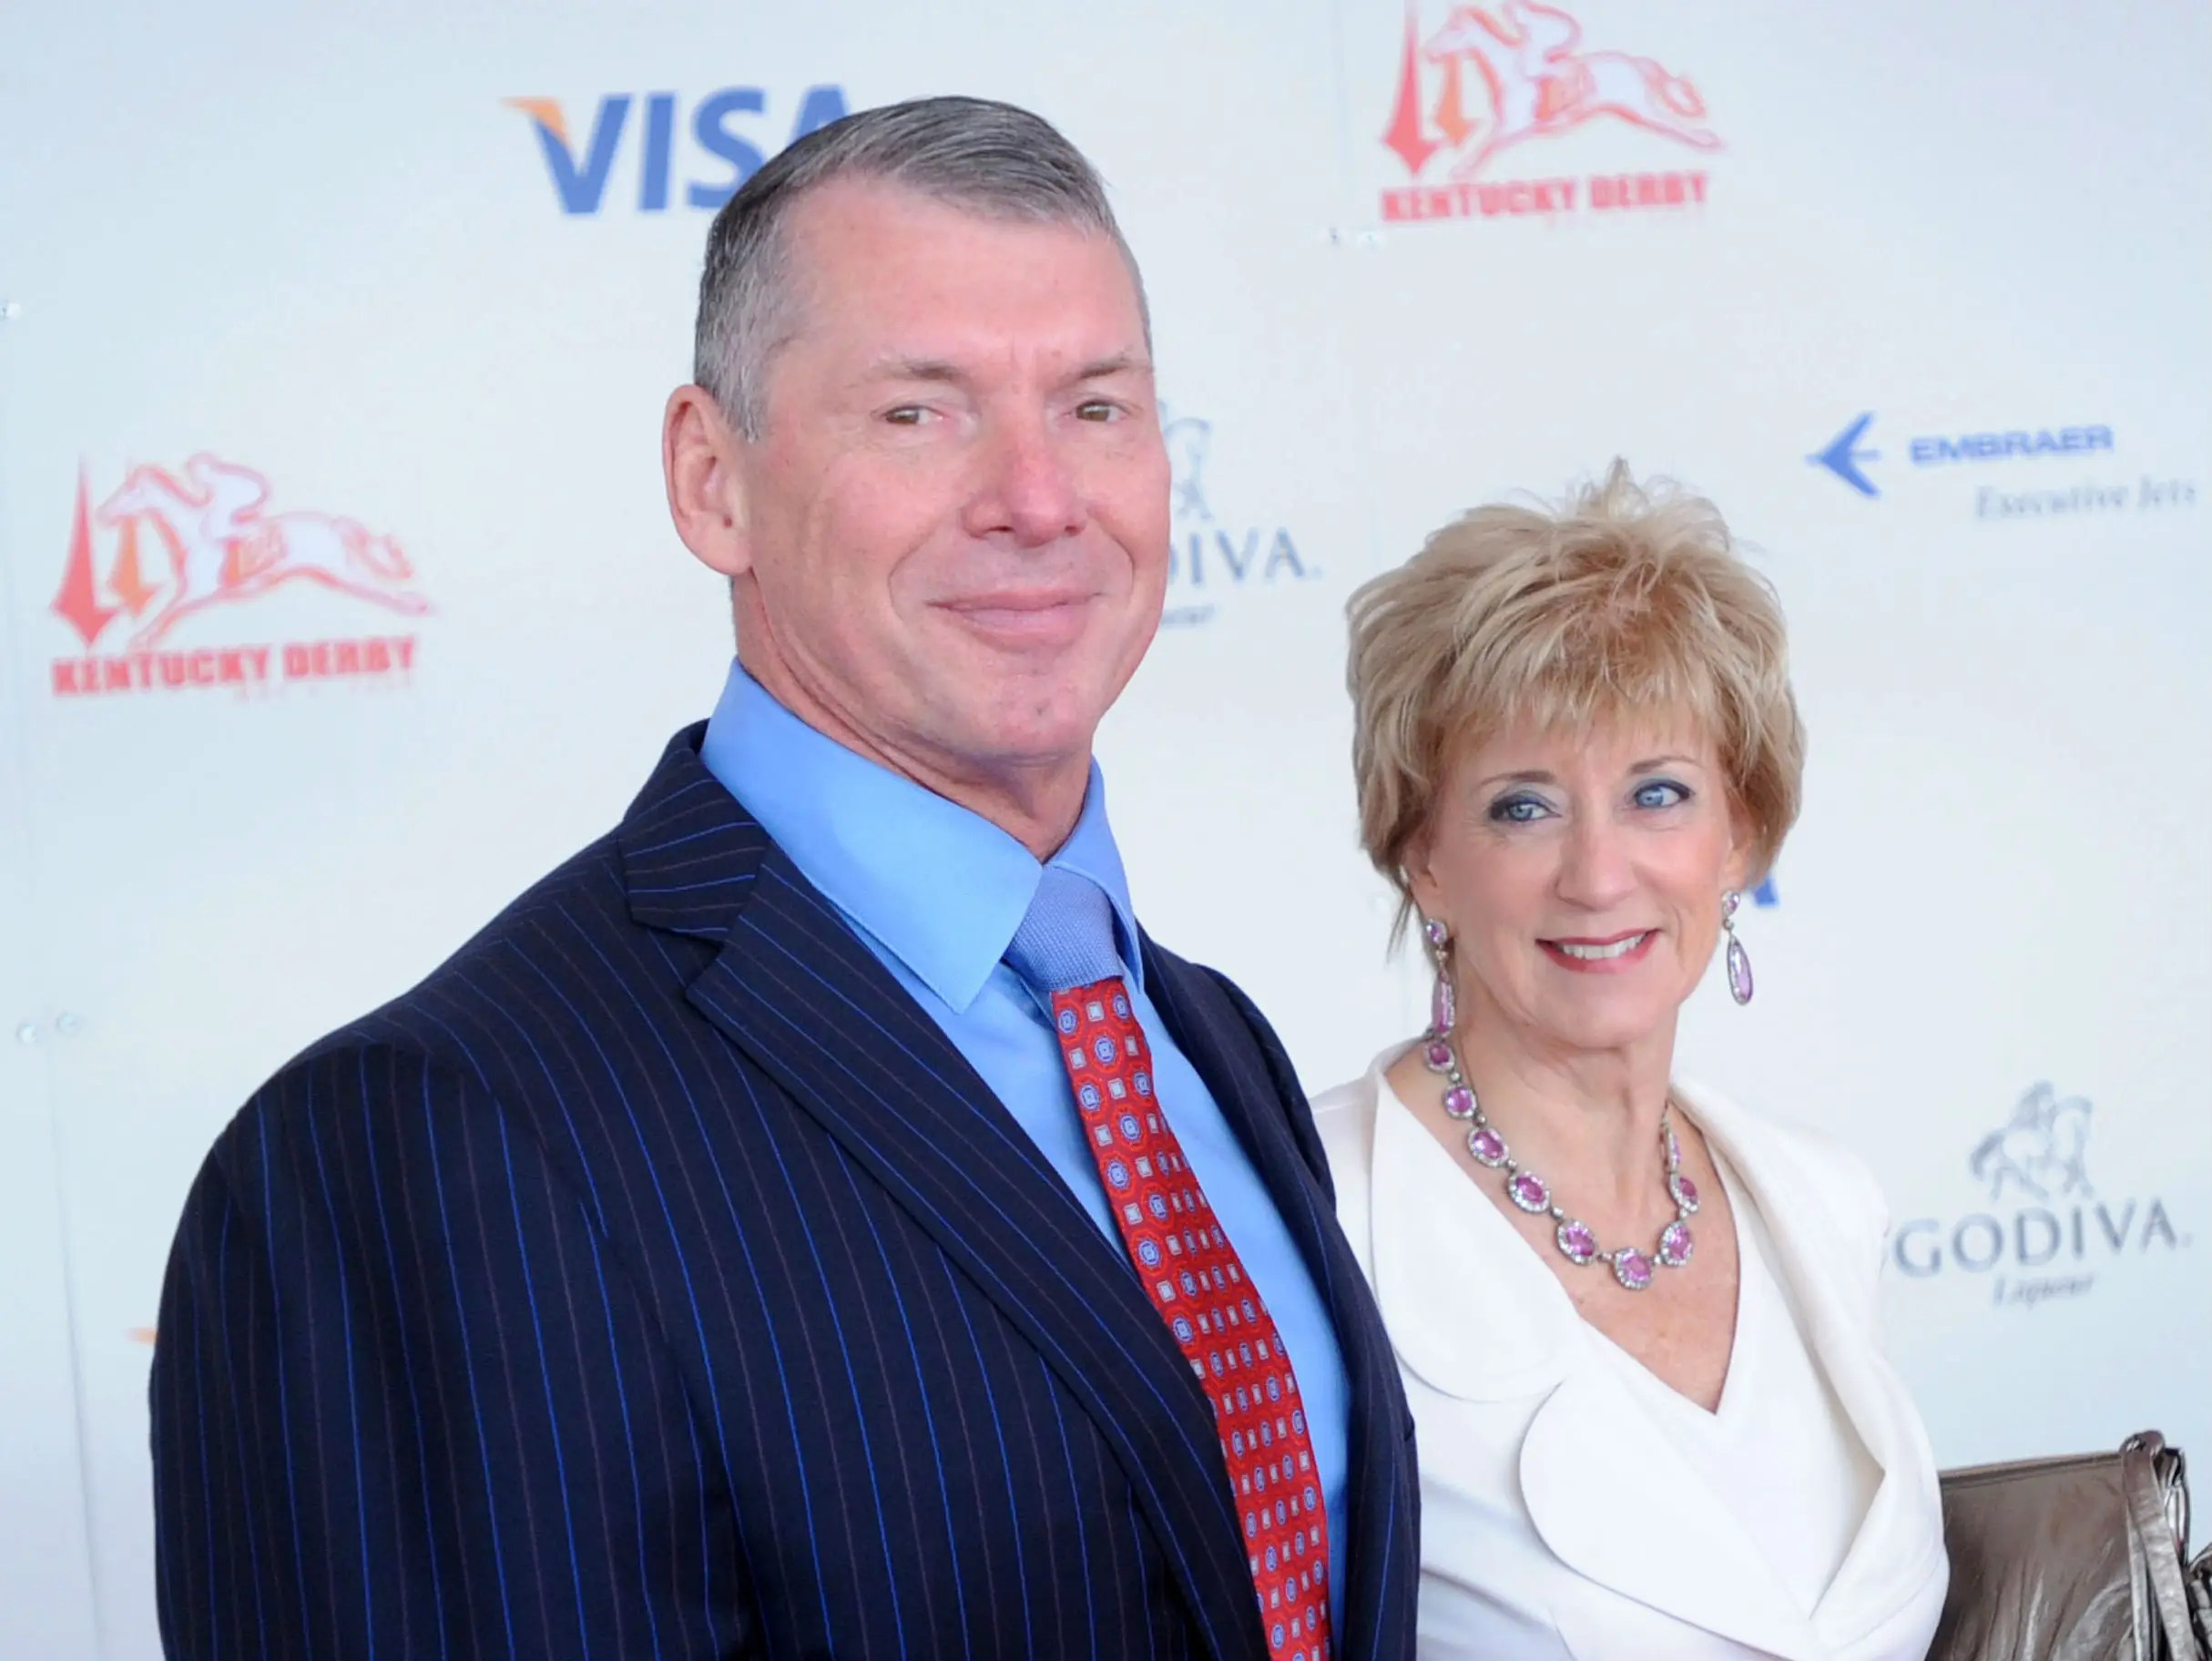 ROMNEY – Vince and Linda McMahon: $159,910